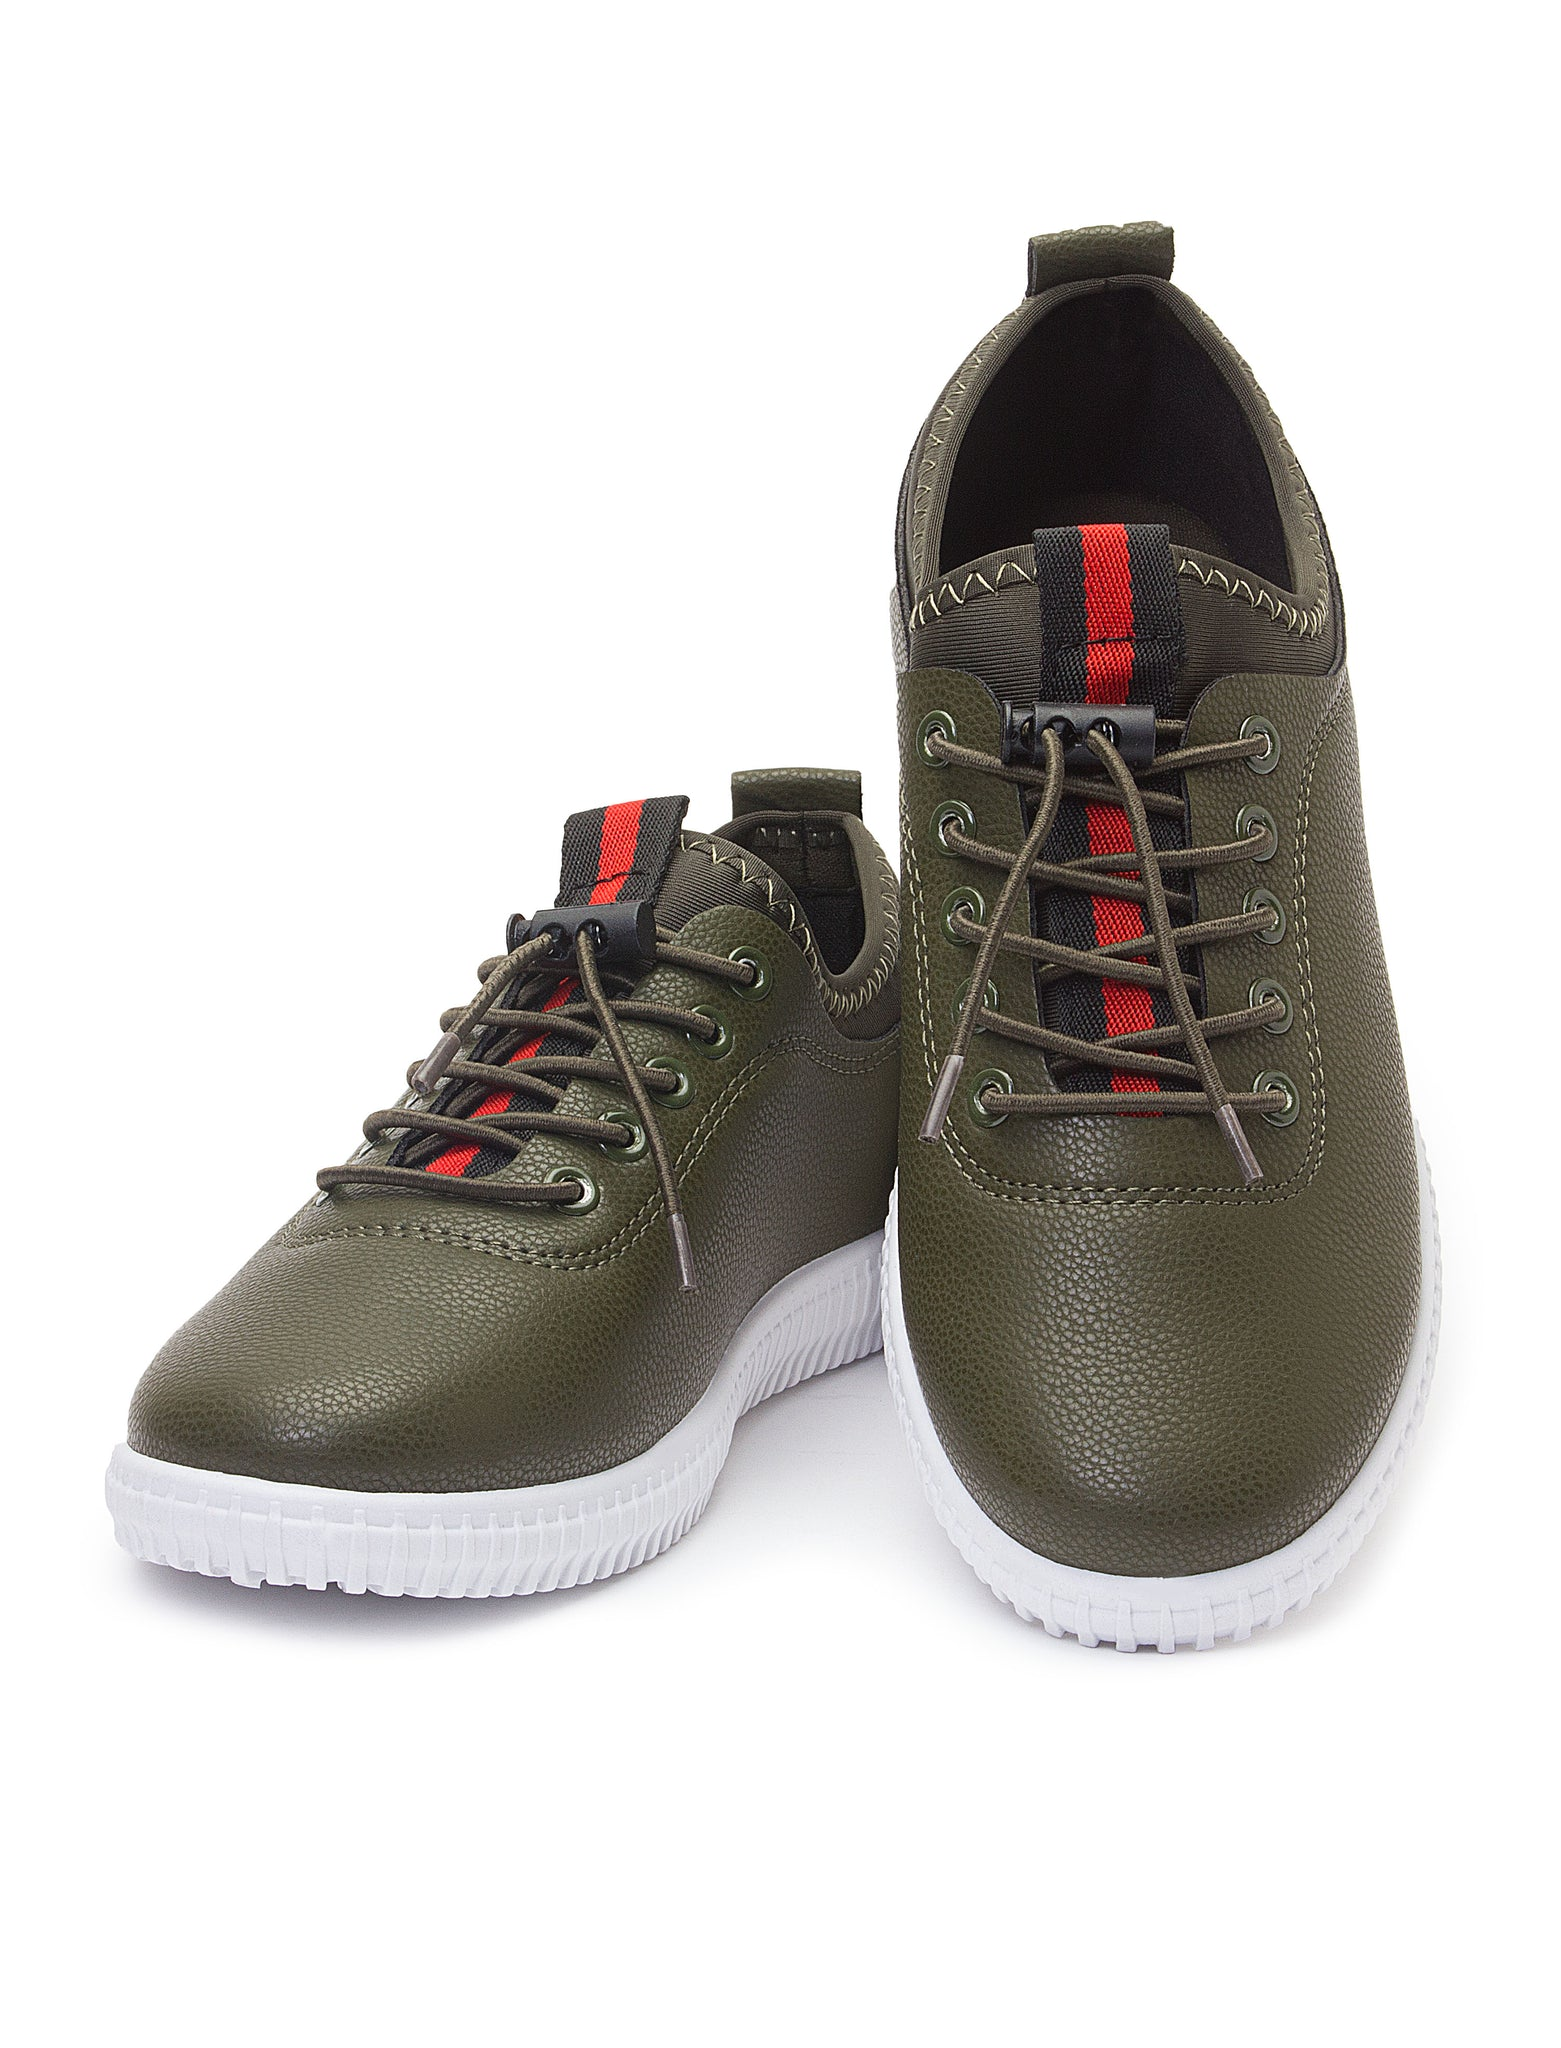 Ladies' Sneakers - Olive